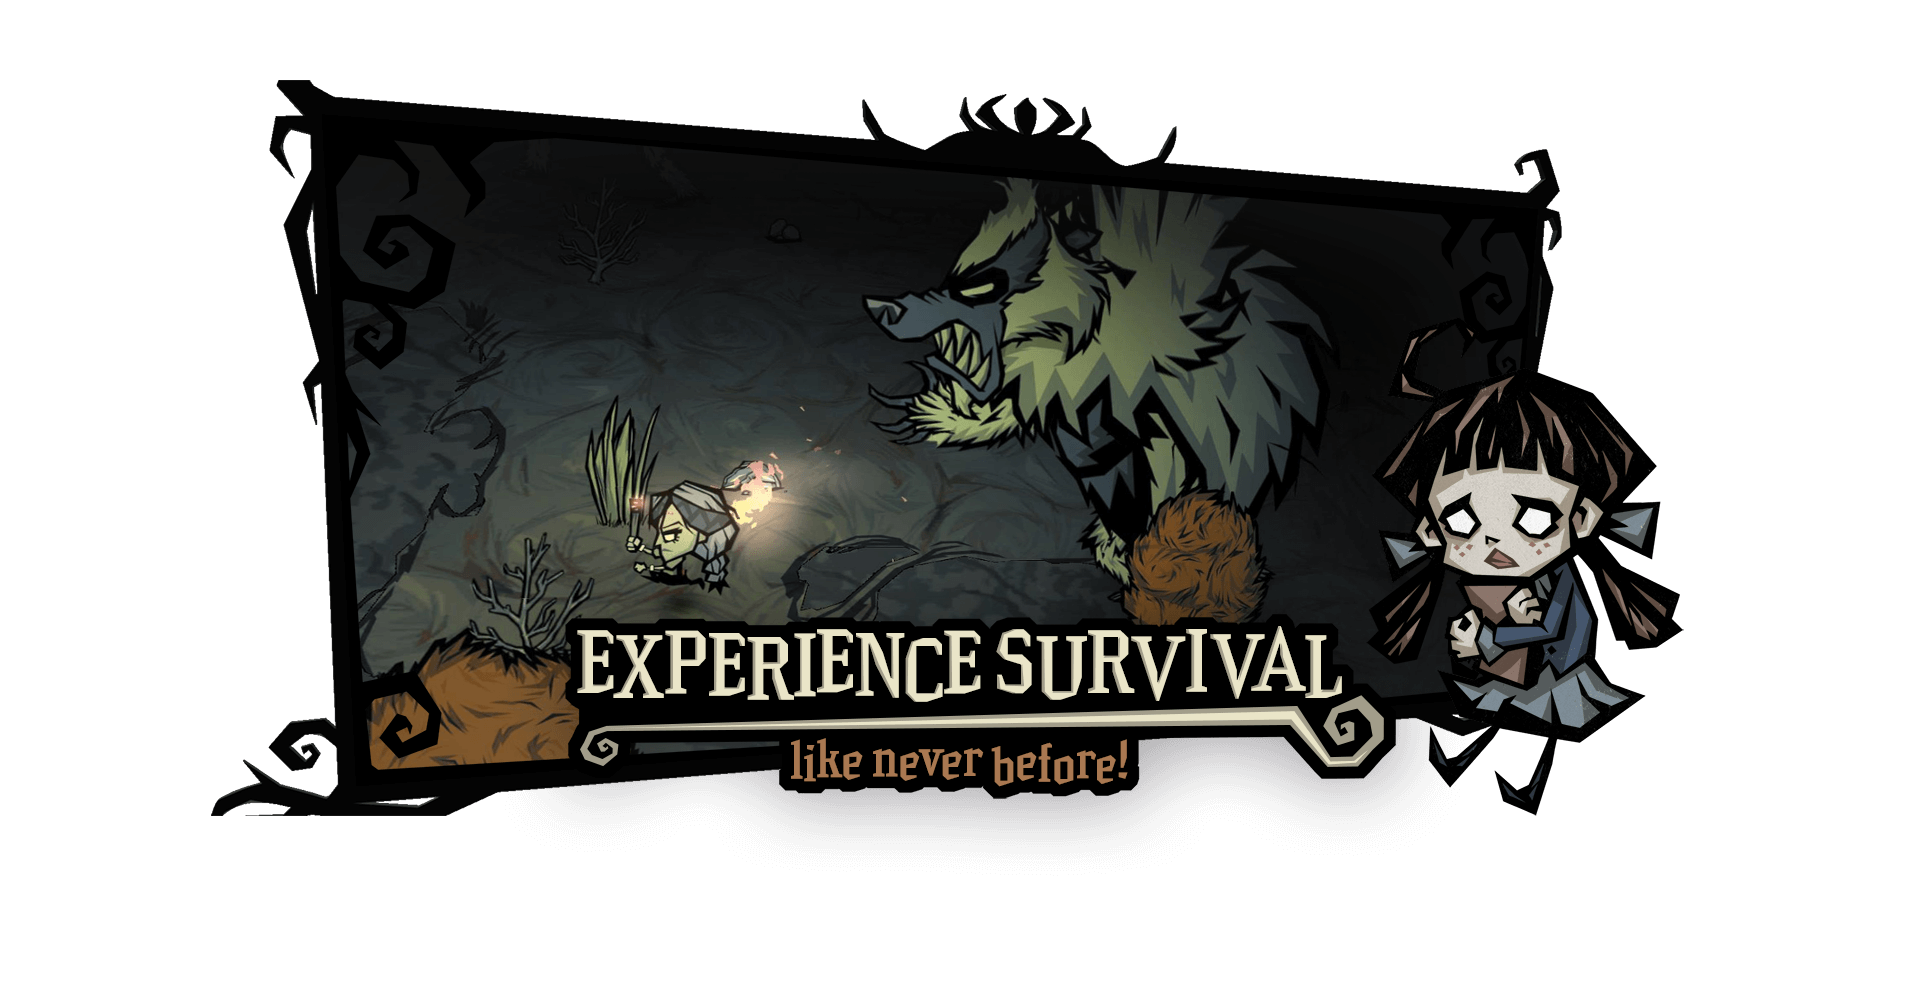 Don't starve experience survival